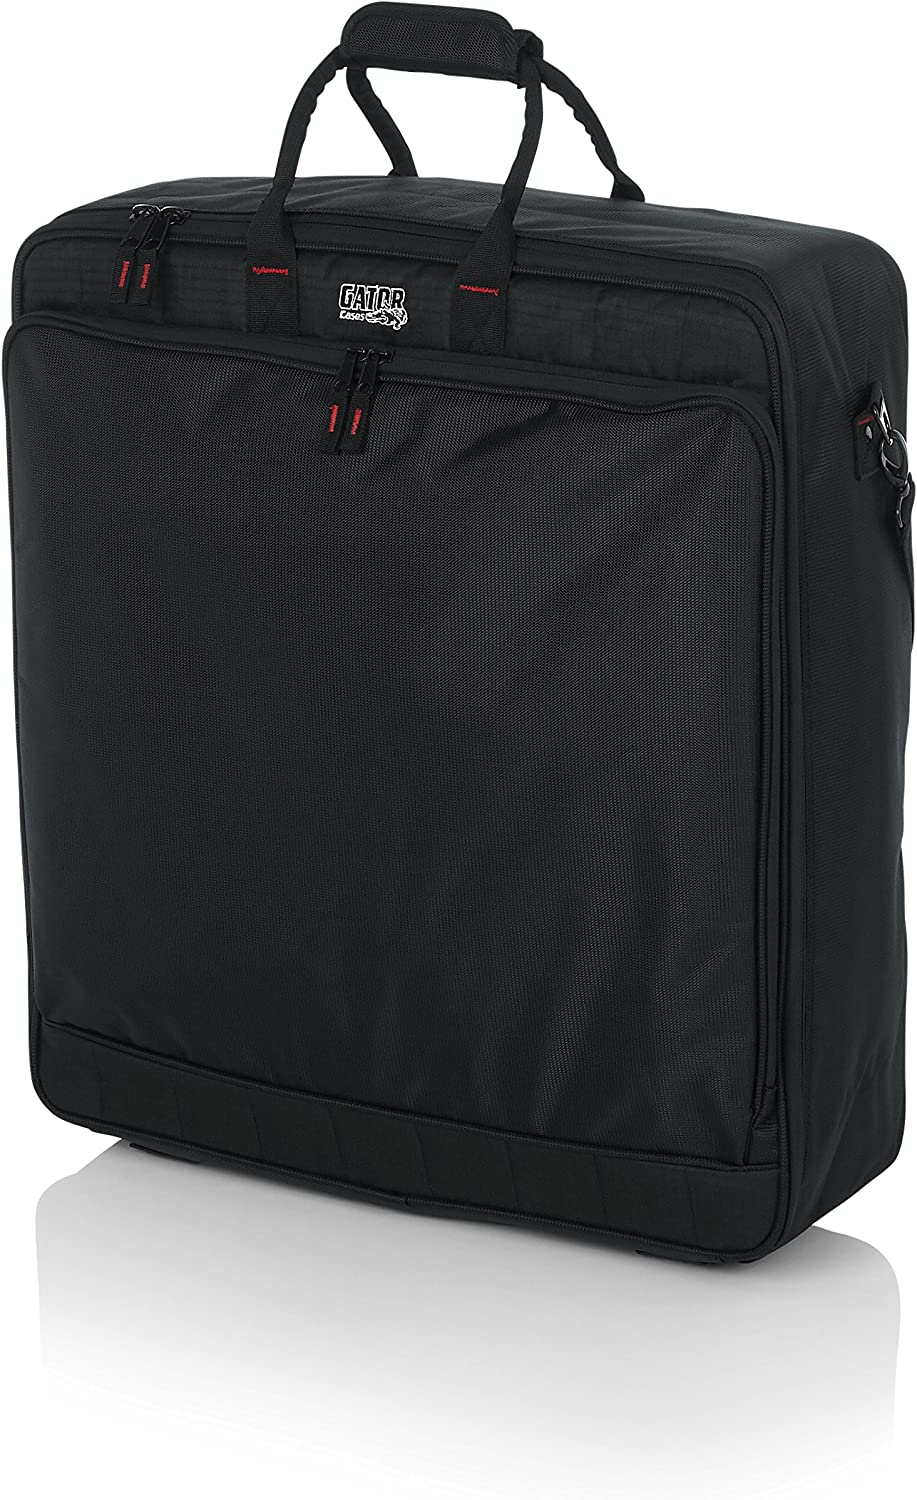 Gator Cases Padded Nylon Mixer Gear Removable Bag Sales of SALE items from new works with Carry San Diego Mall Str